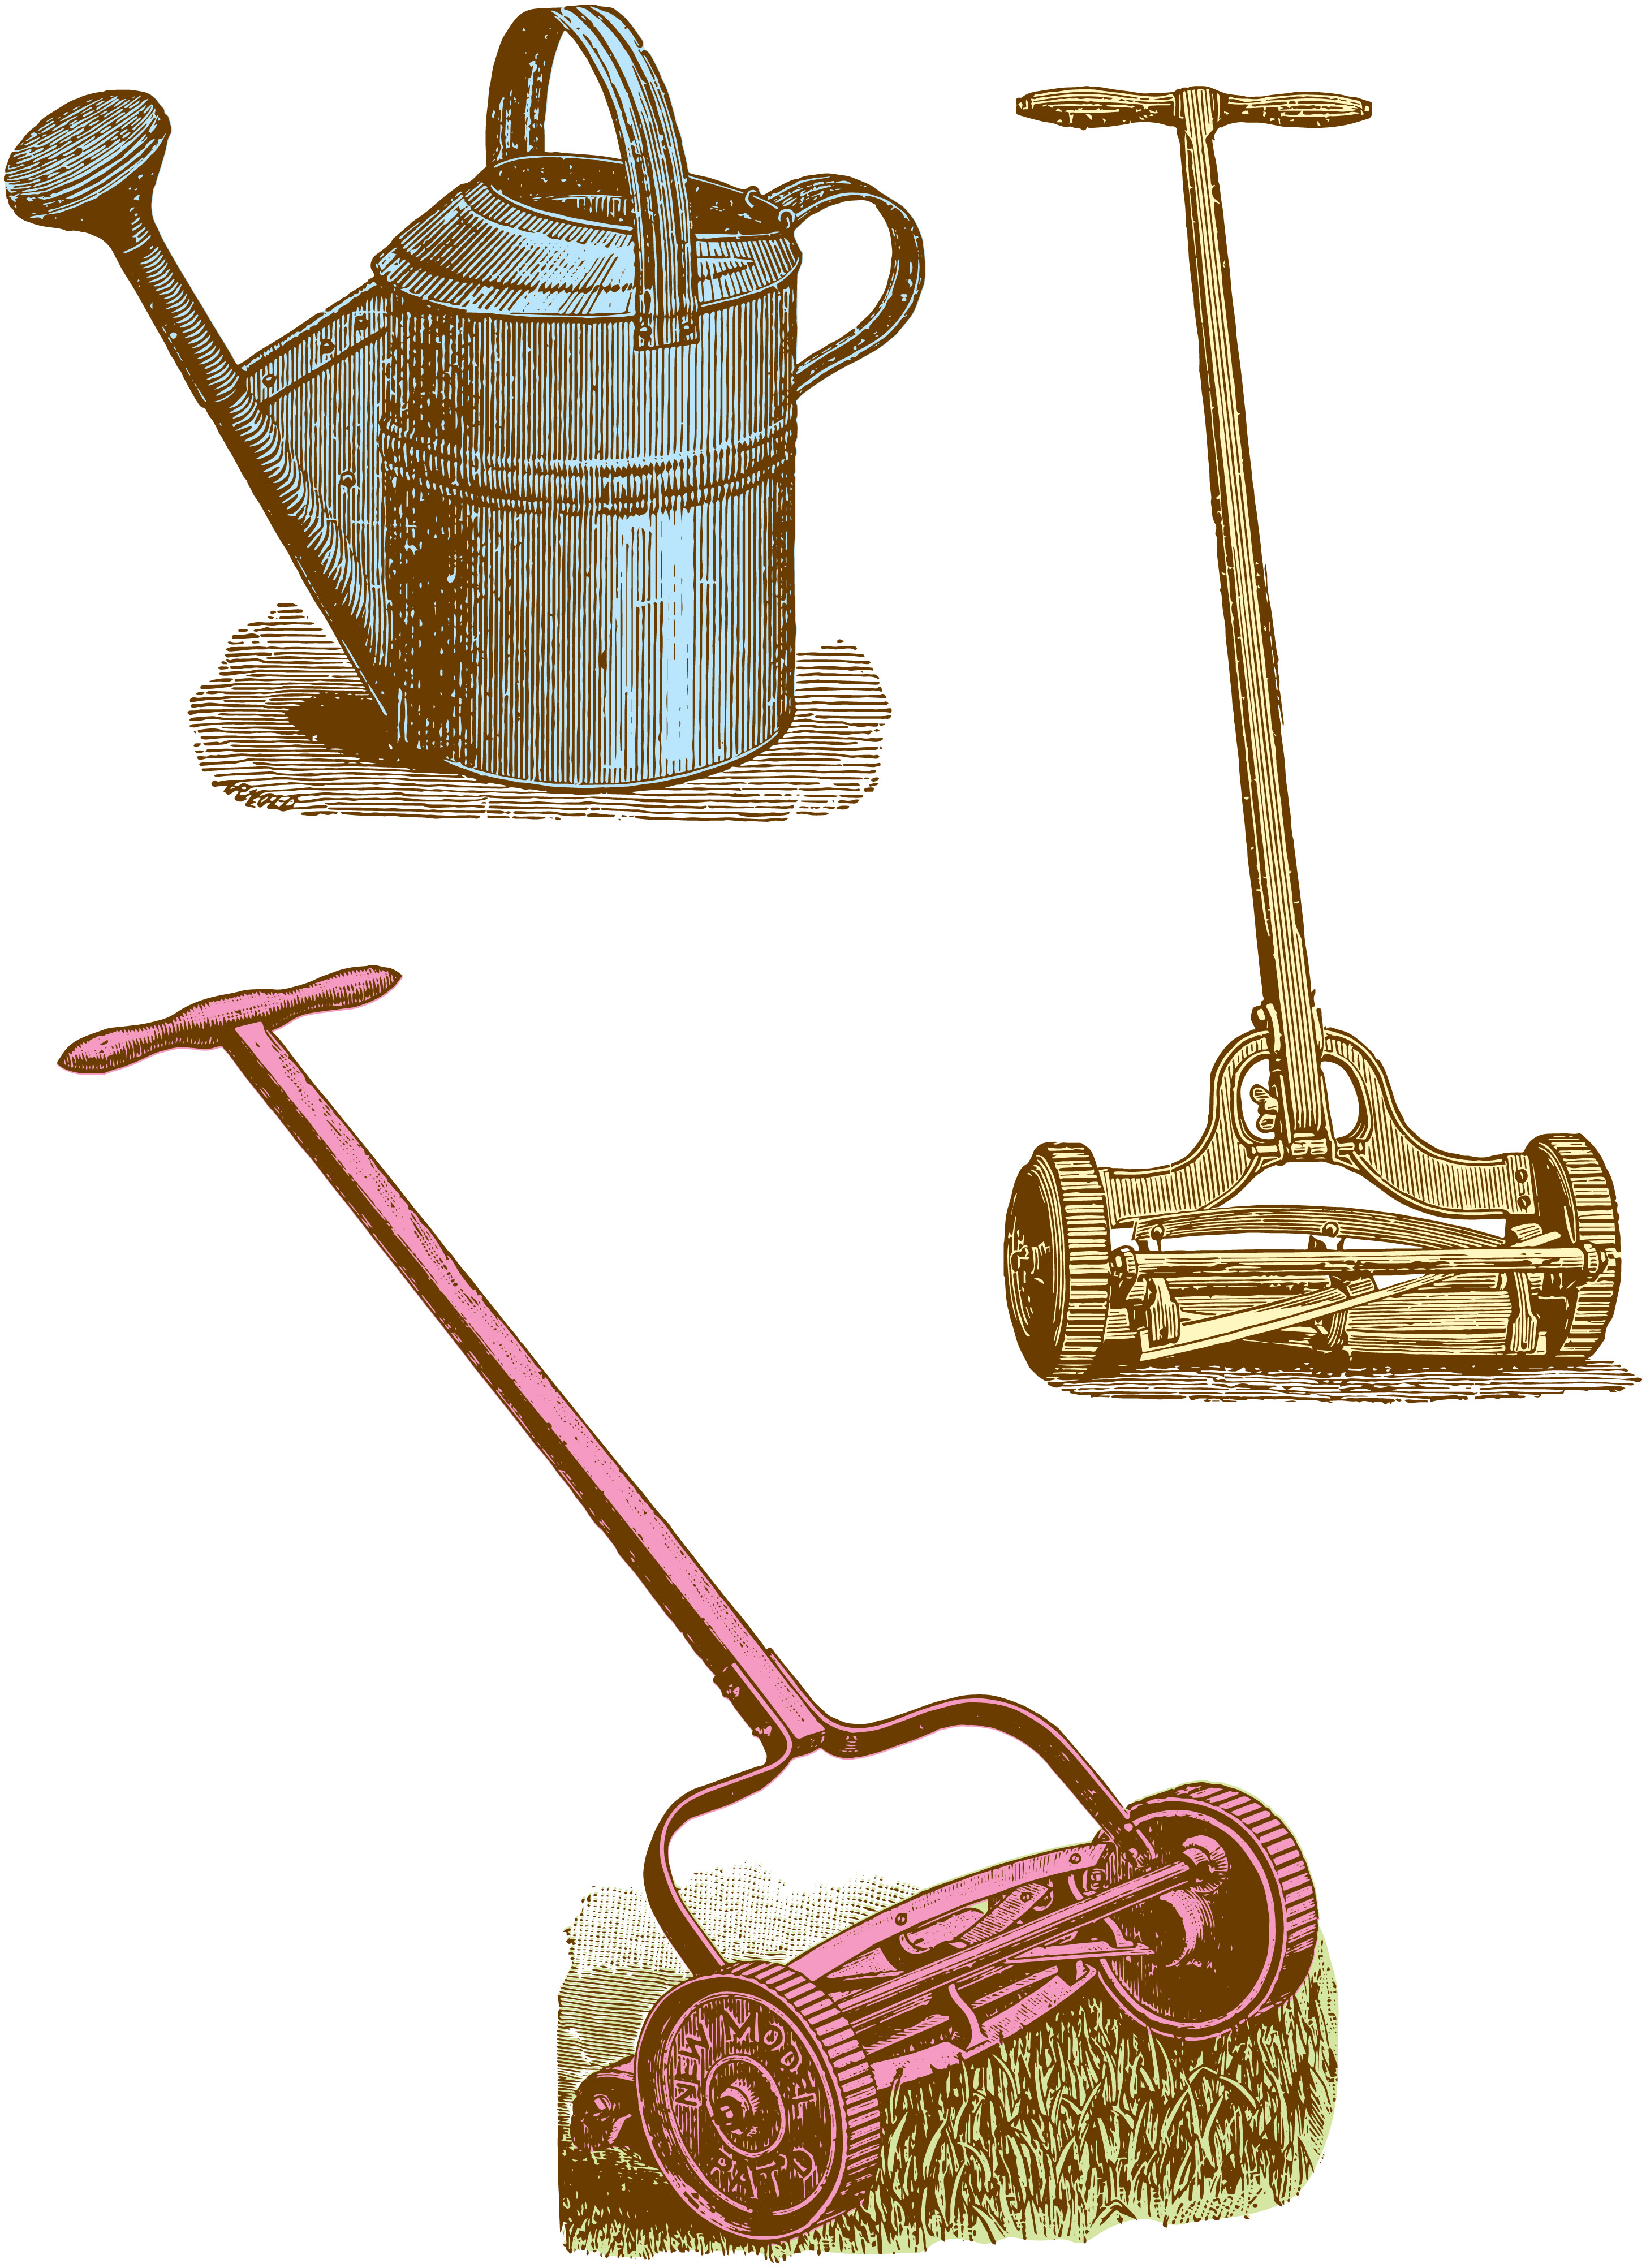 Today S Vintage Graphics Some Useful Gardening Tools Watering Can Lawn